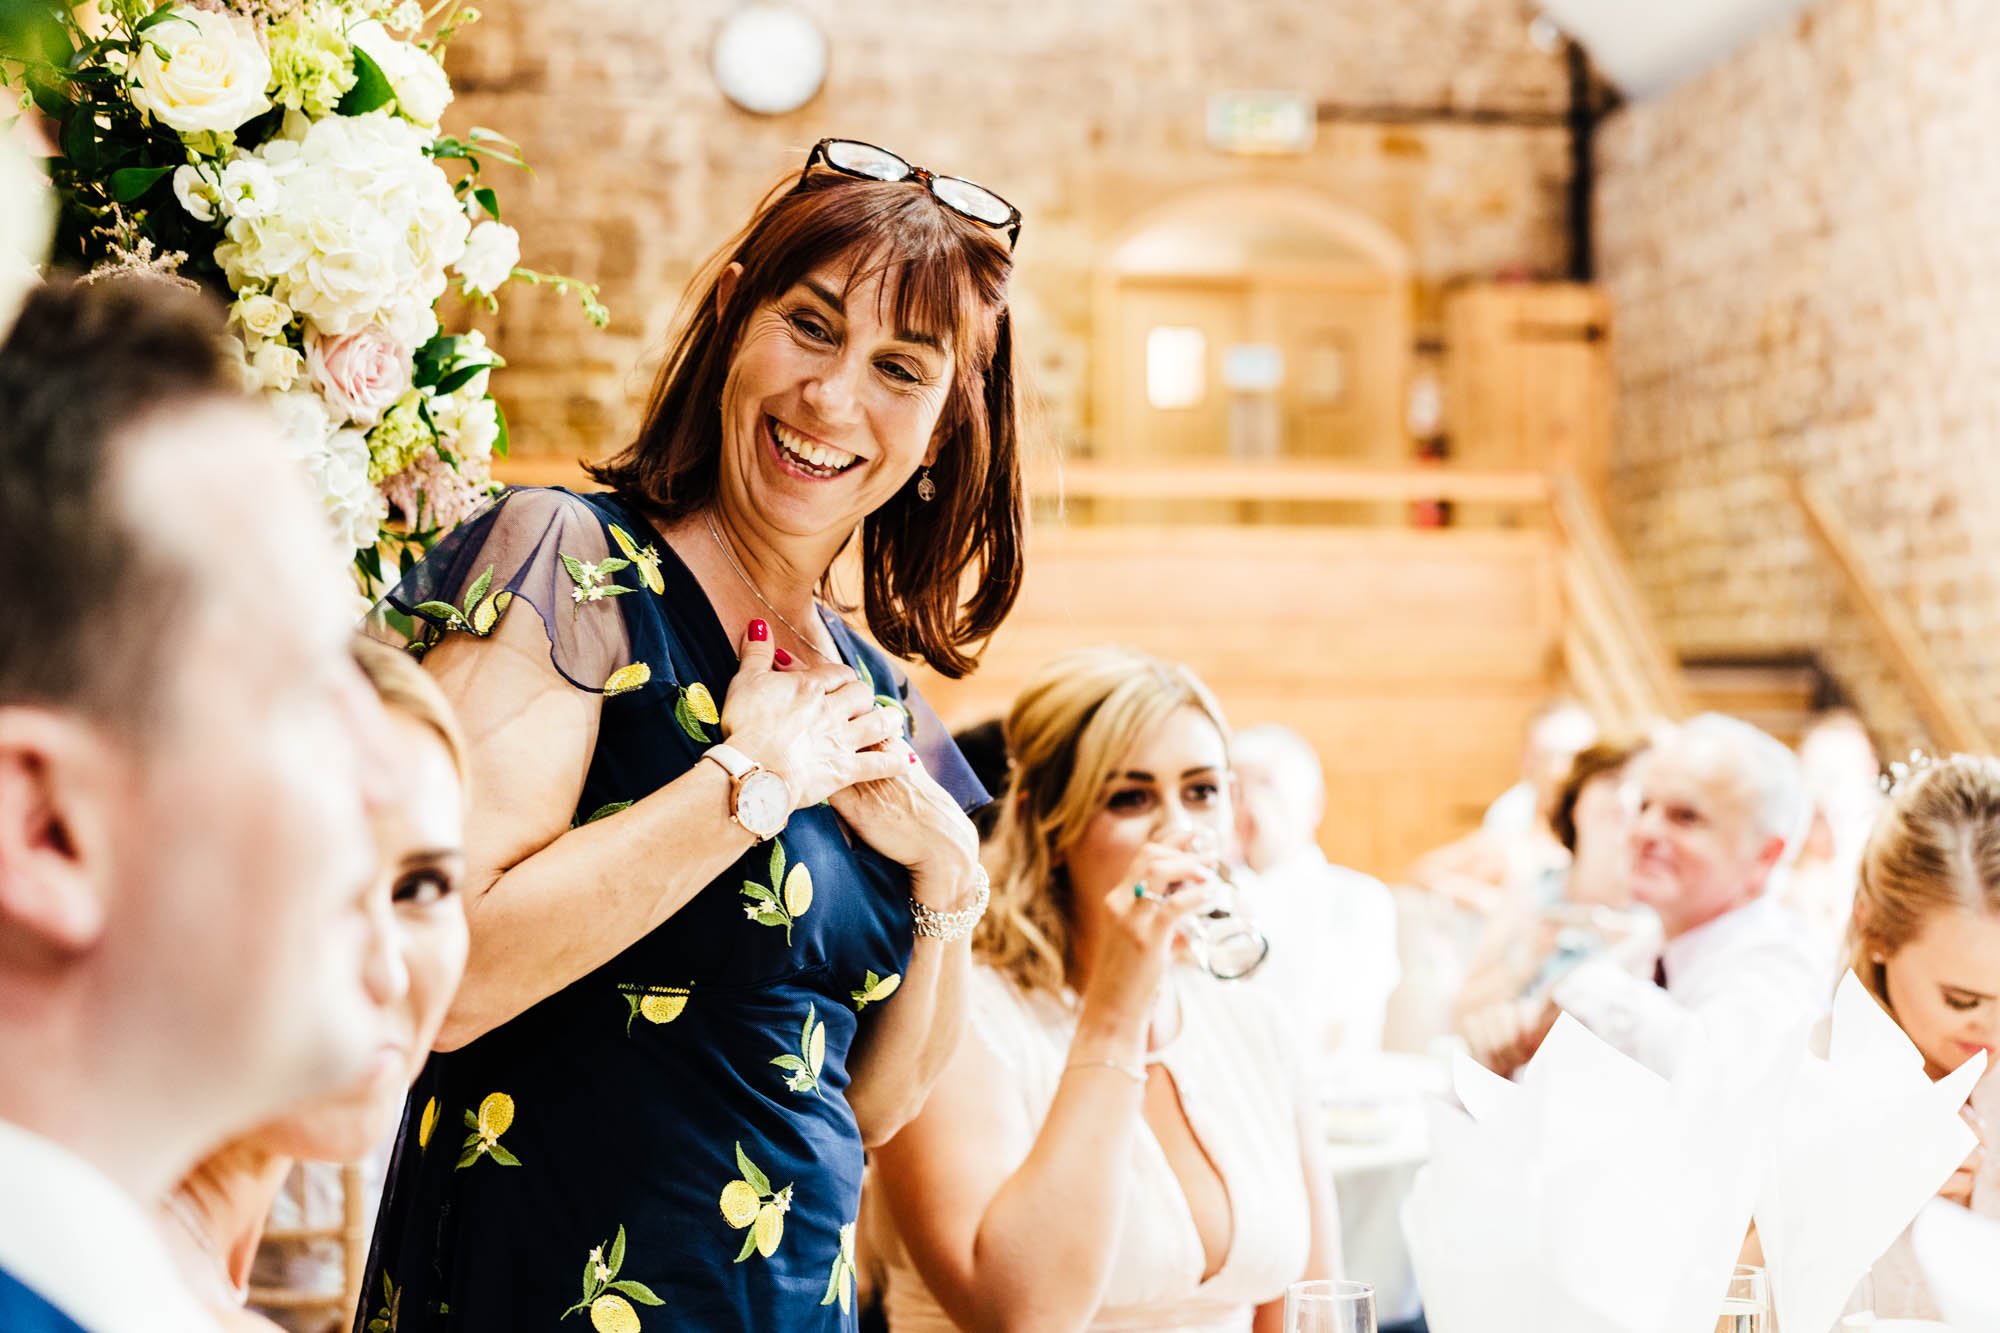 wedding-at-the-barns-at-hunsbury-hill-43